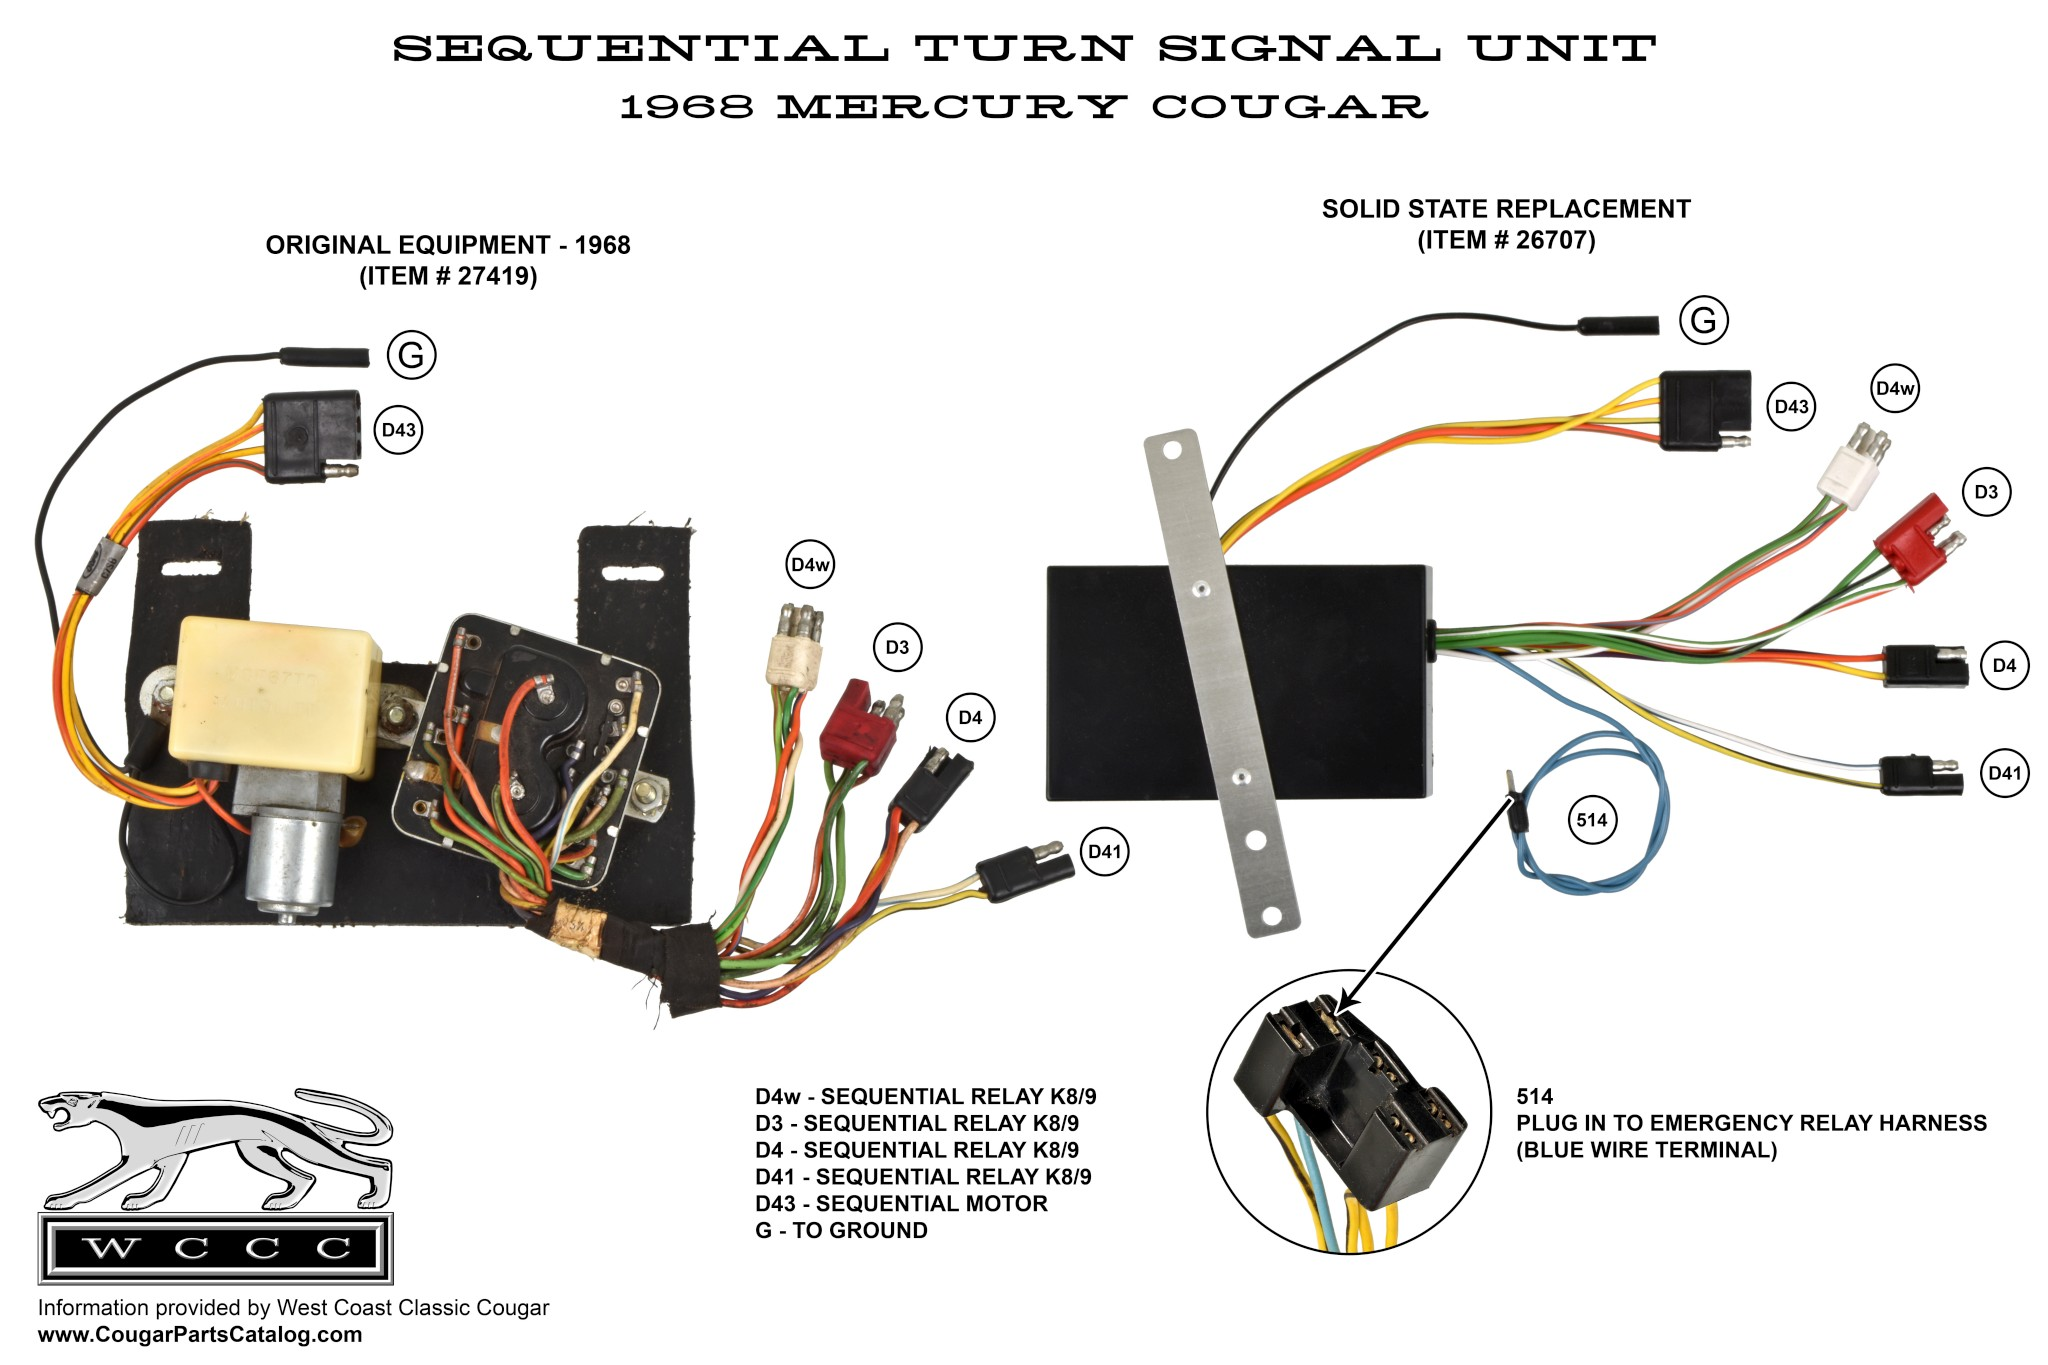 Wiring Diagram To 1968 302 Schematic 68 Ford Color Of Wires Sequential Turn Signal Box Solid State Repro Mercury Rh Secure Cougarpartscatalog Com 1969 Mustang Cougar